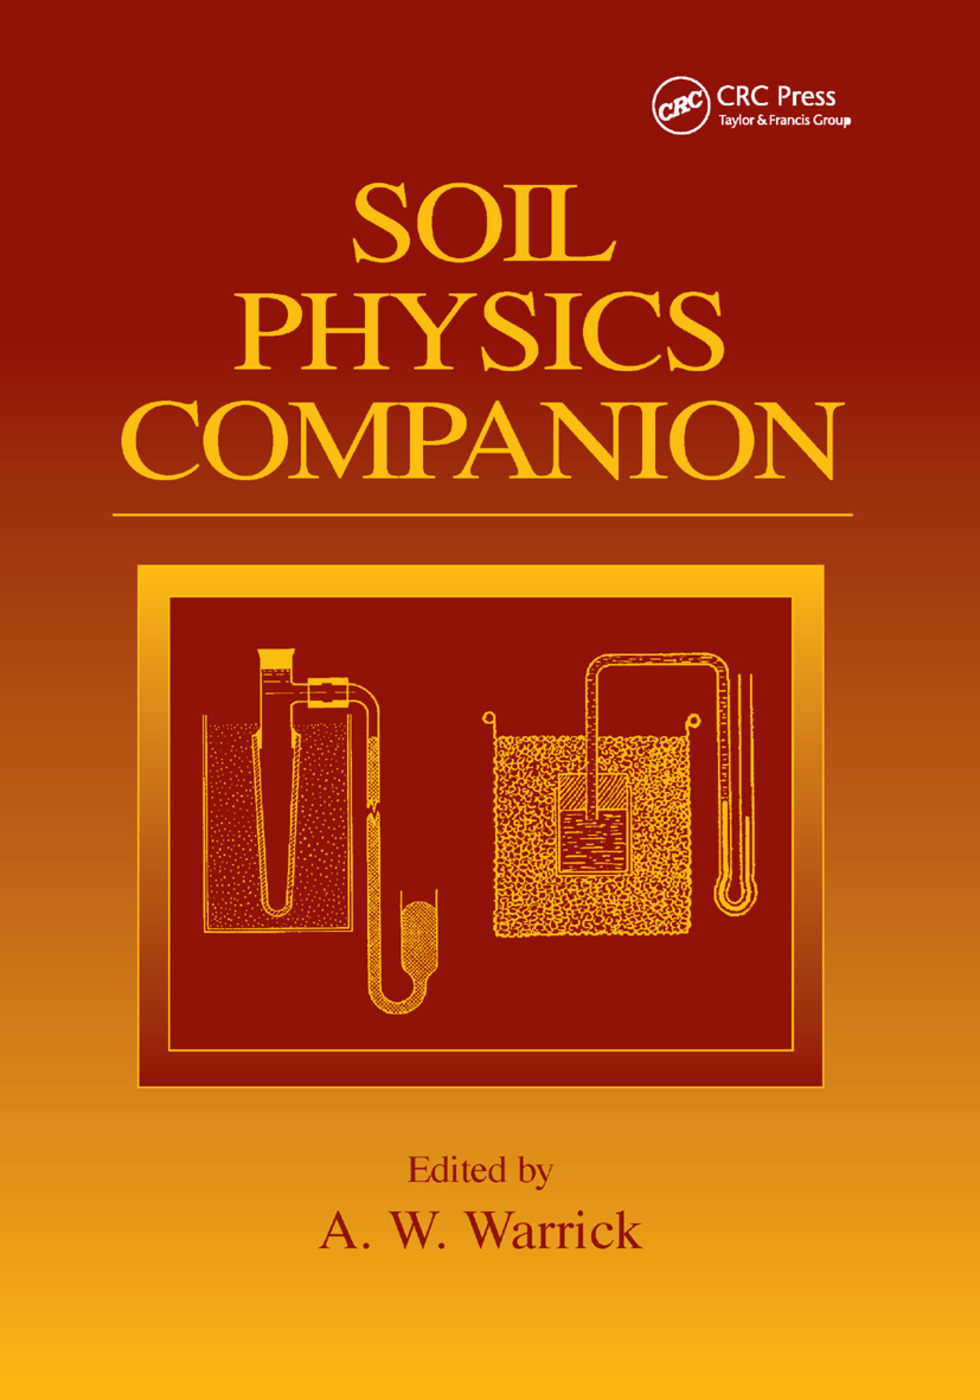 Soil Physics Companion: 1st Edition (Paperback) book cover